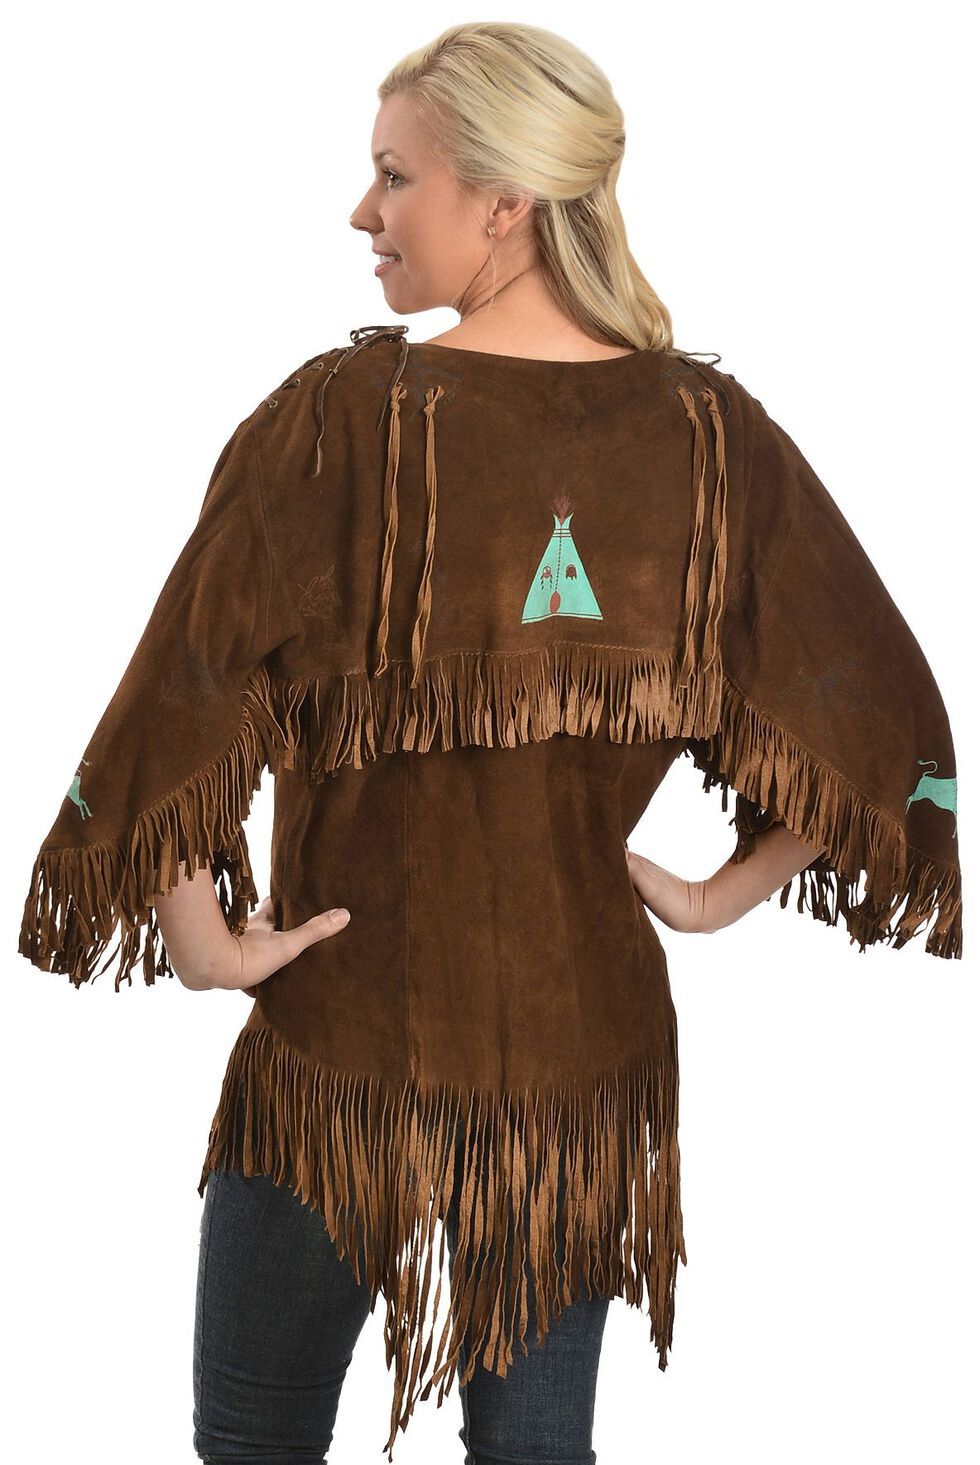 Kobler Leather Picachu Fringe Shirt, Acorn, hi-res